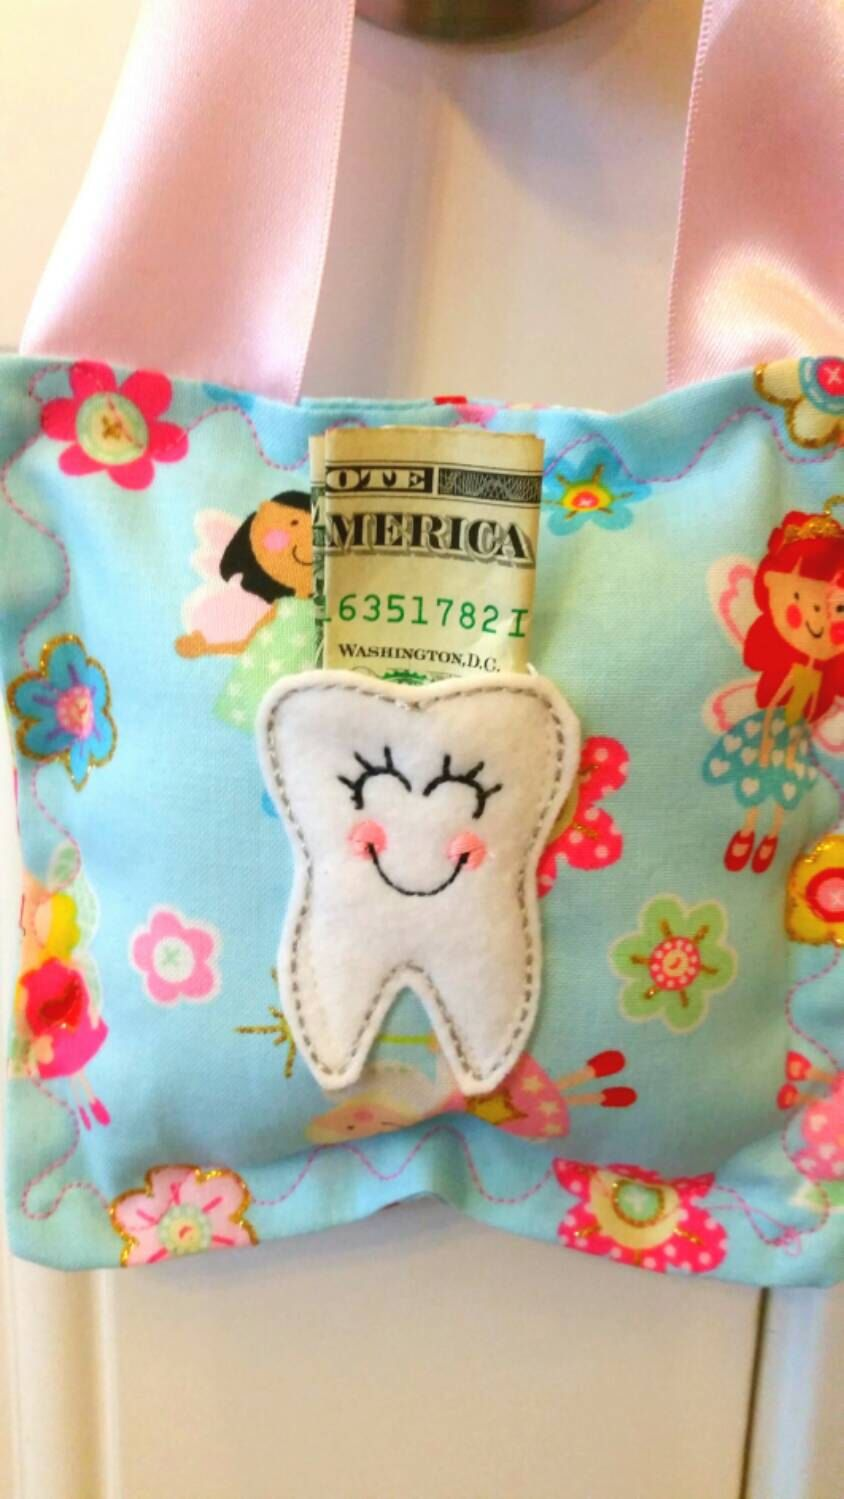 Tooth Fairy Pillow - Fairies by SunshineChloeCrafts on Etsy https://www.etsy.com/listing/253745939/tooth-fairy-pillow-fairies